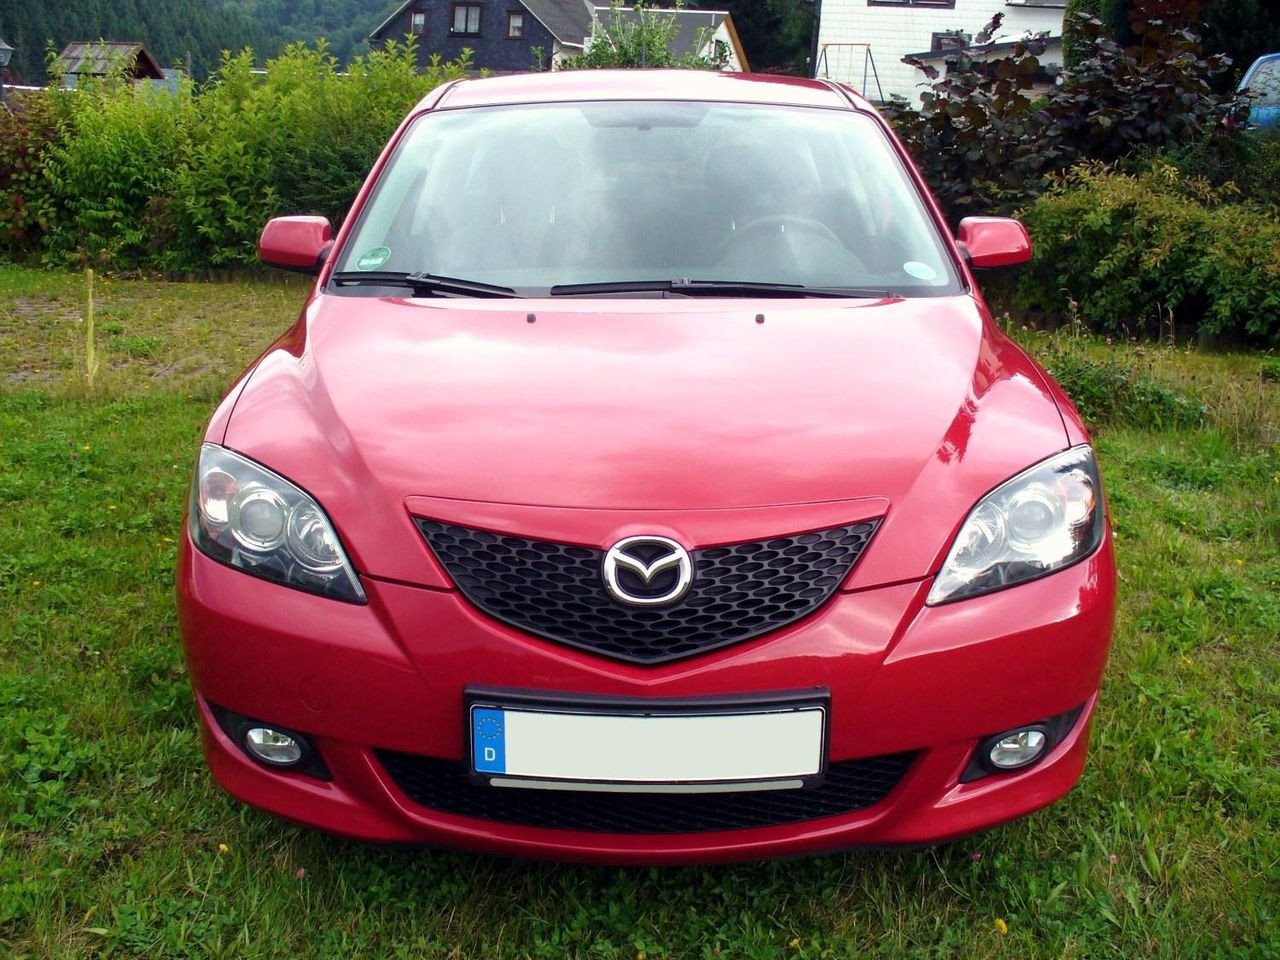 file mazda 3 sport 1 6 mzr exclusive tornadorot front jpg wikimedia commons. Black Bedroom Furniture Sets. Home Design Ideas